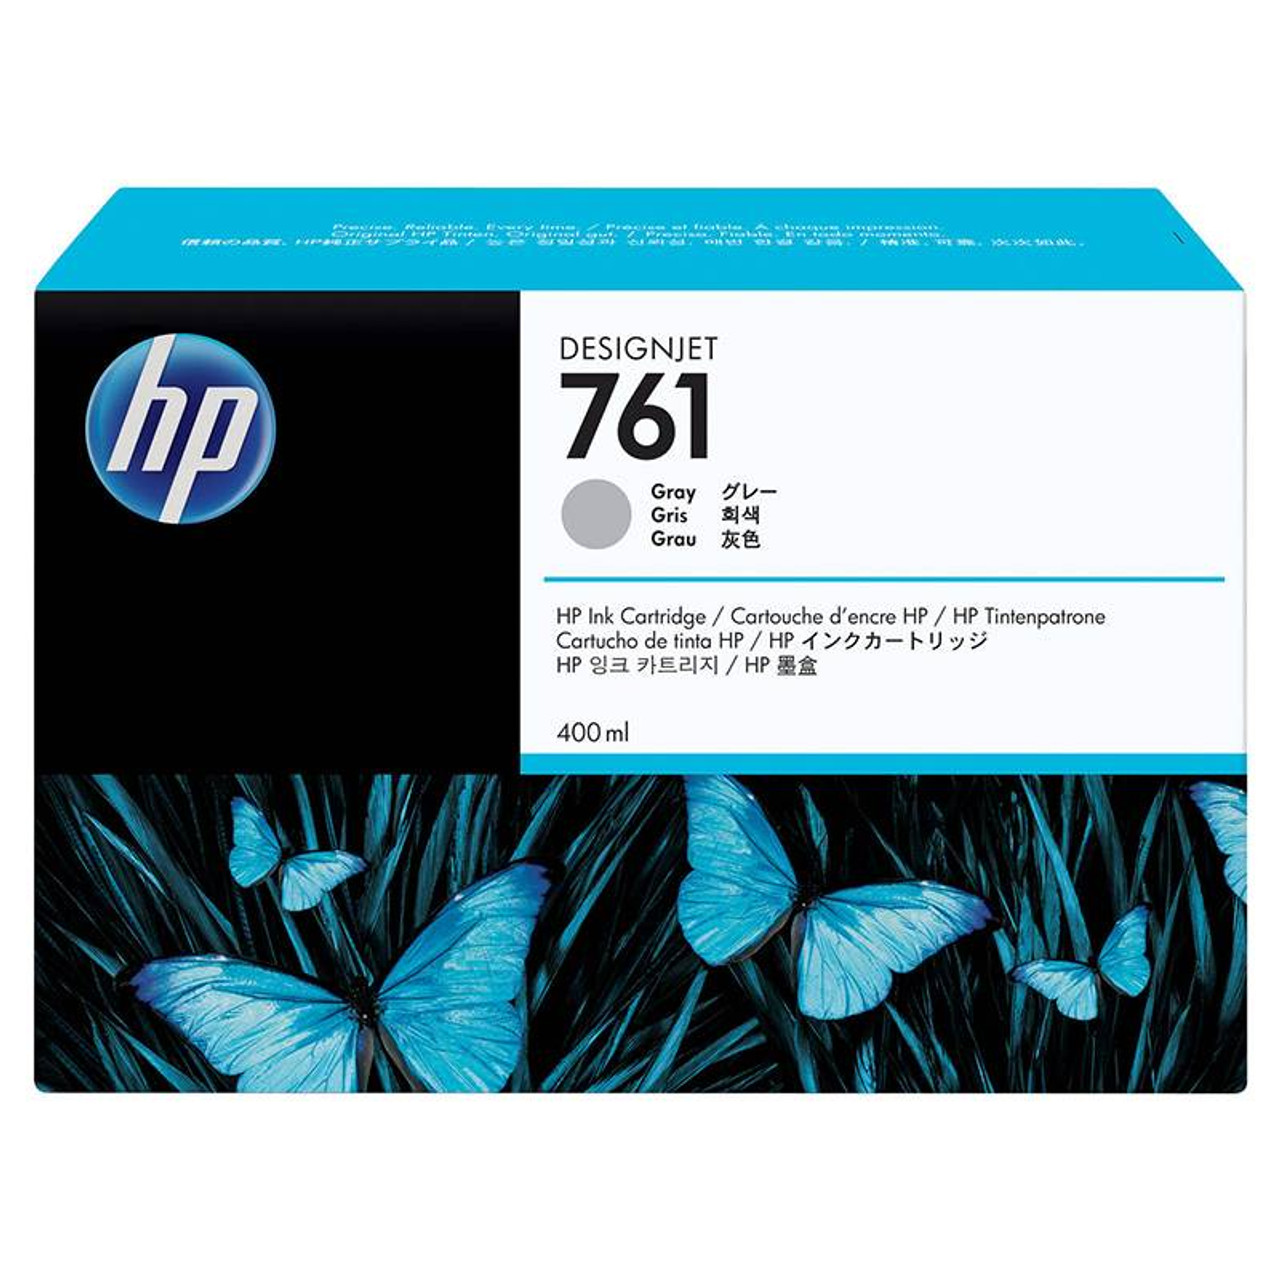 Image for HP761 400ML DesignJet Ink Cartridge - Grey (CM995A) CX Computer Superstore